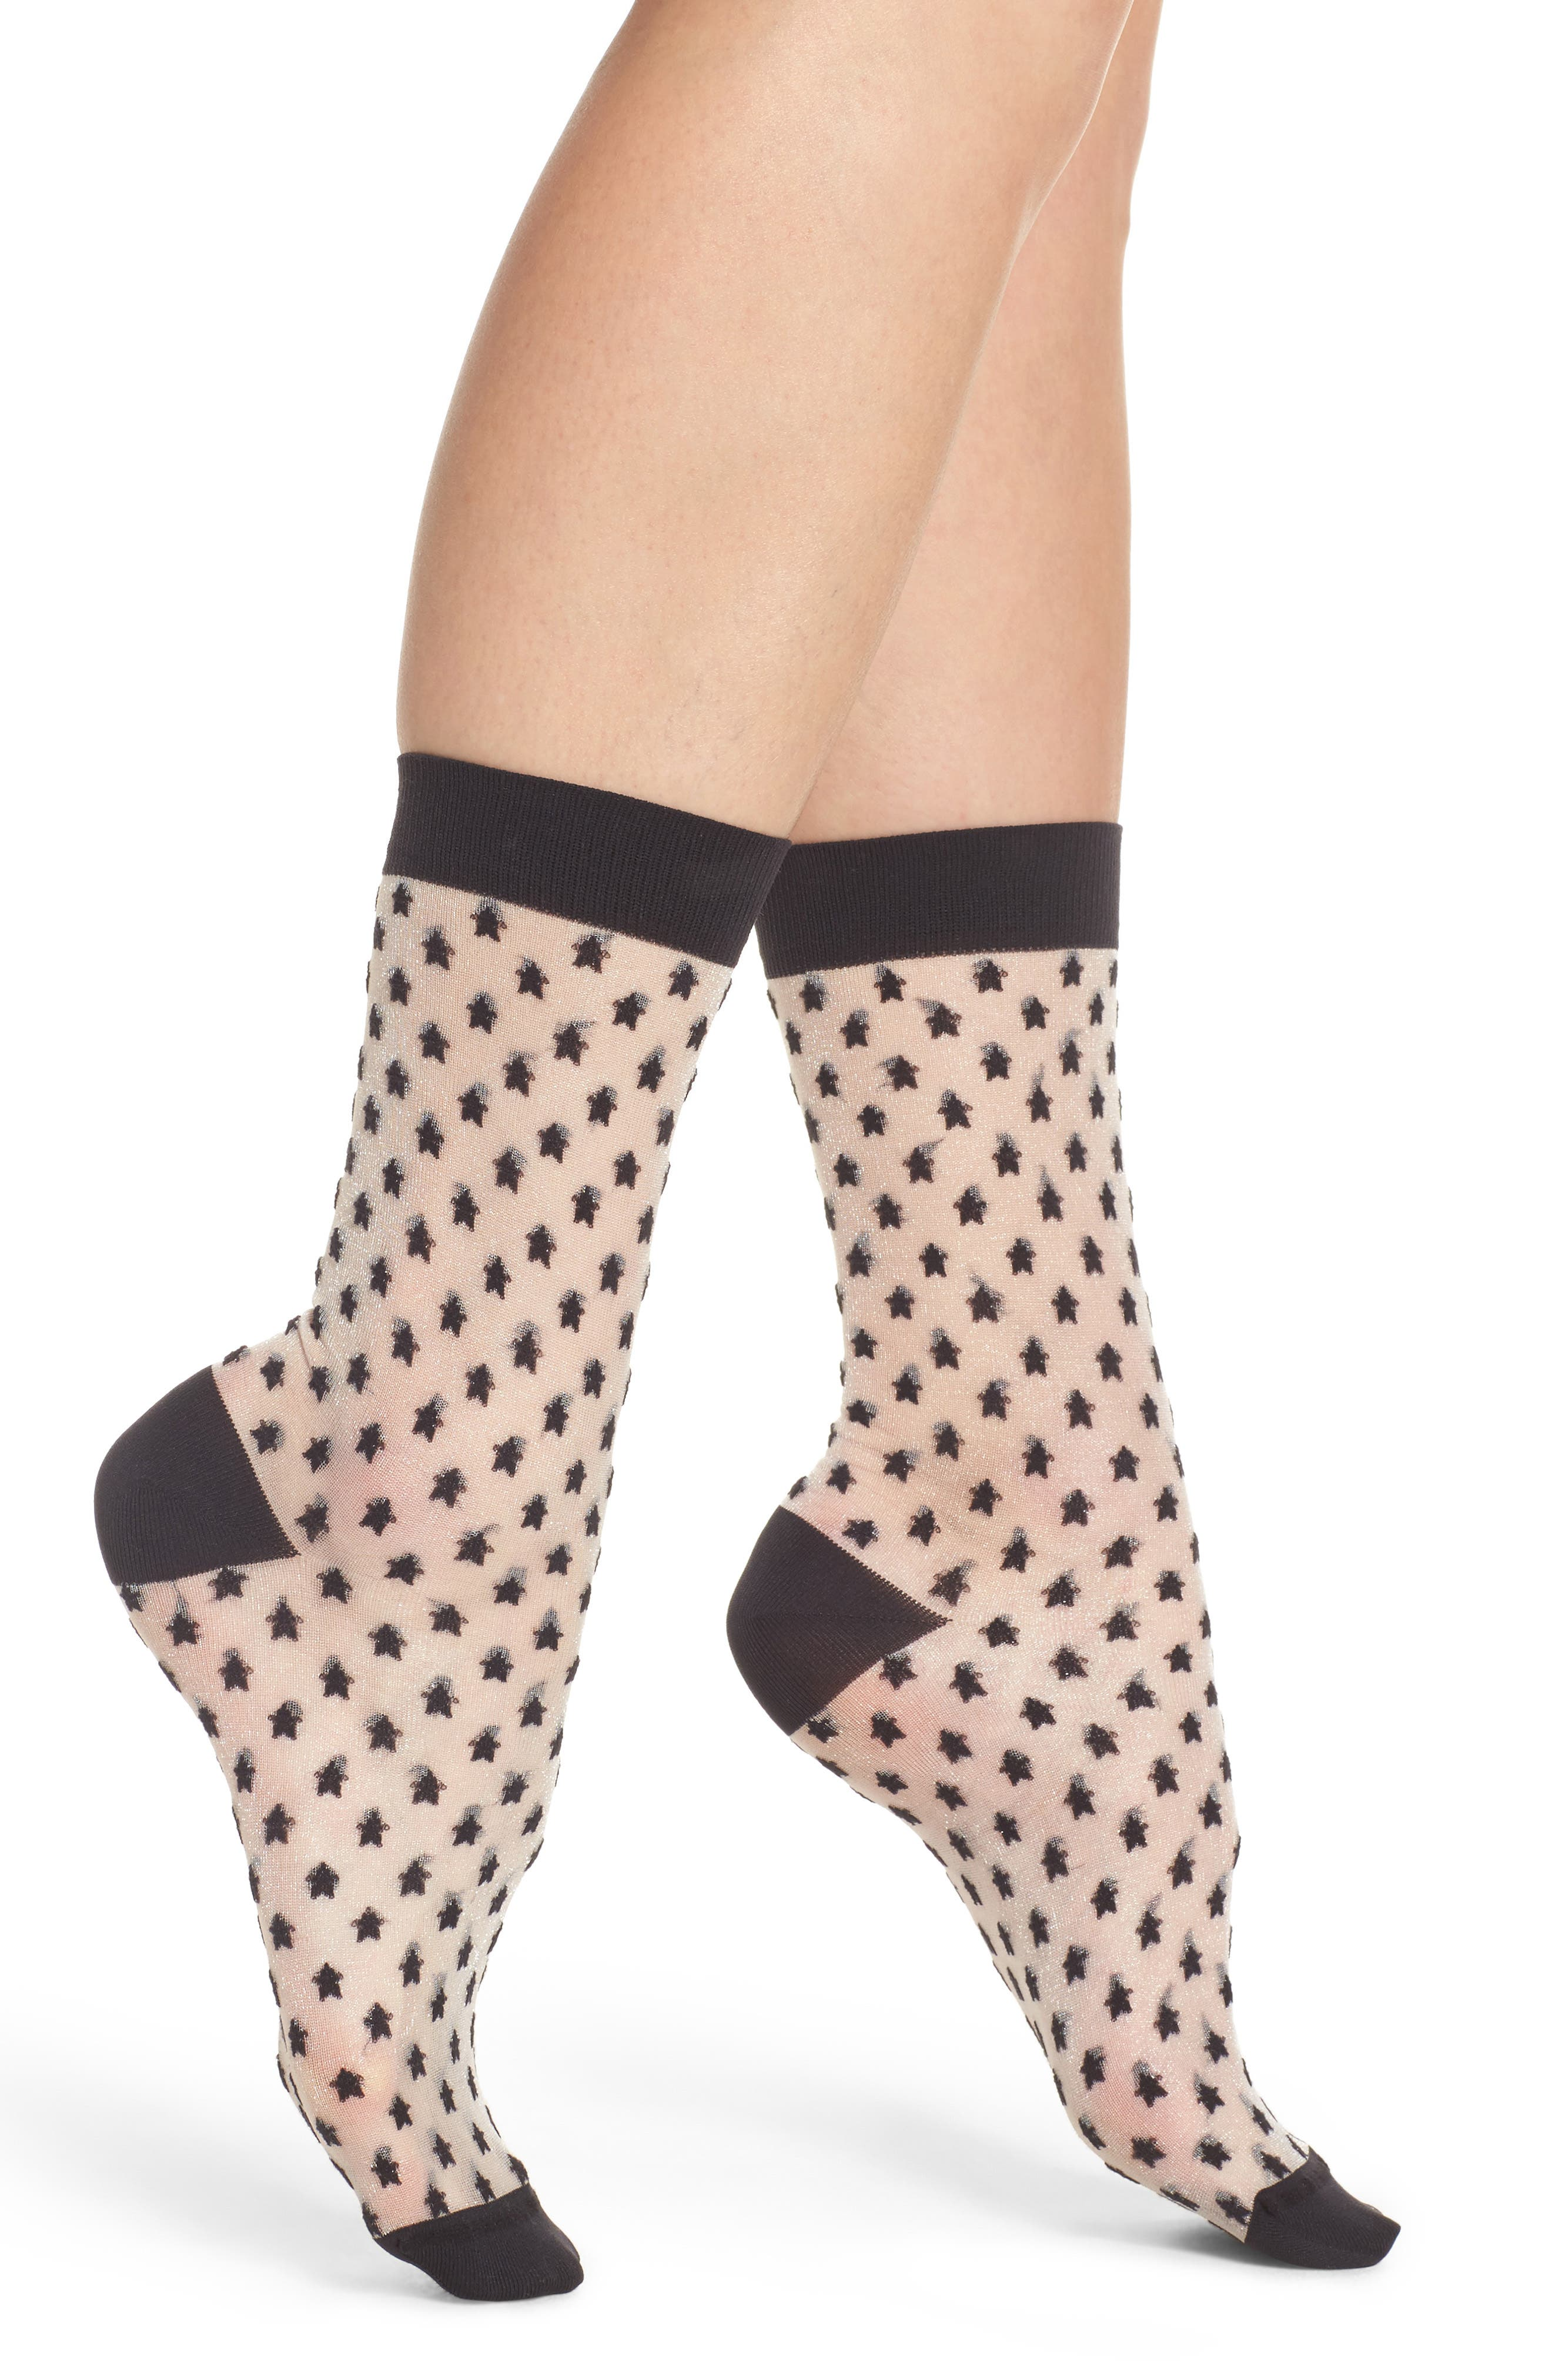 Sheer Star Crew Socks,                         Main,                         color, Black Star